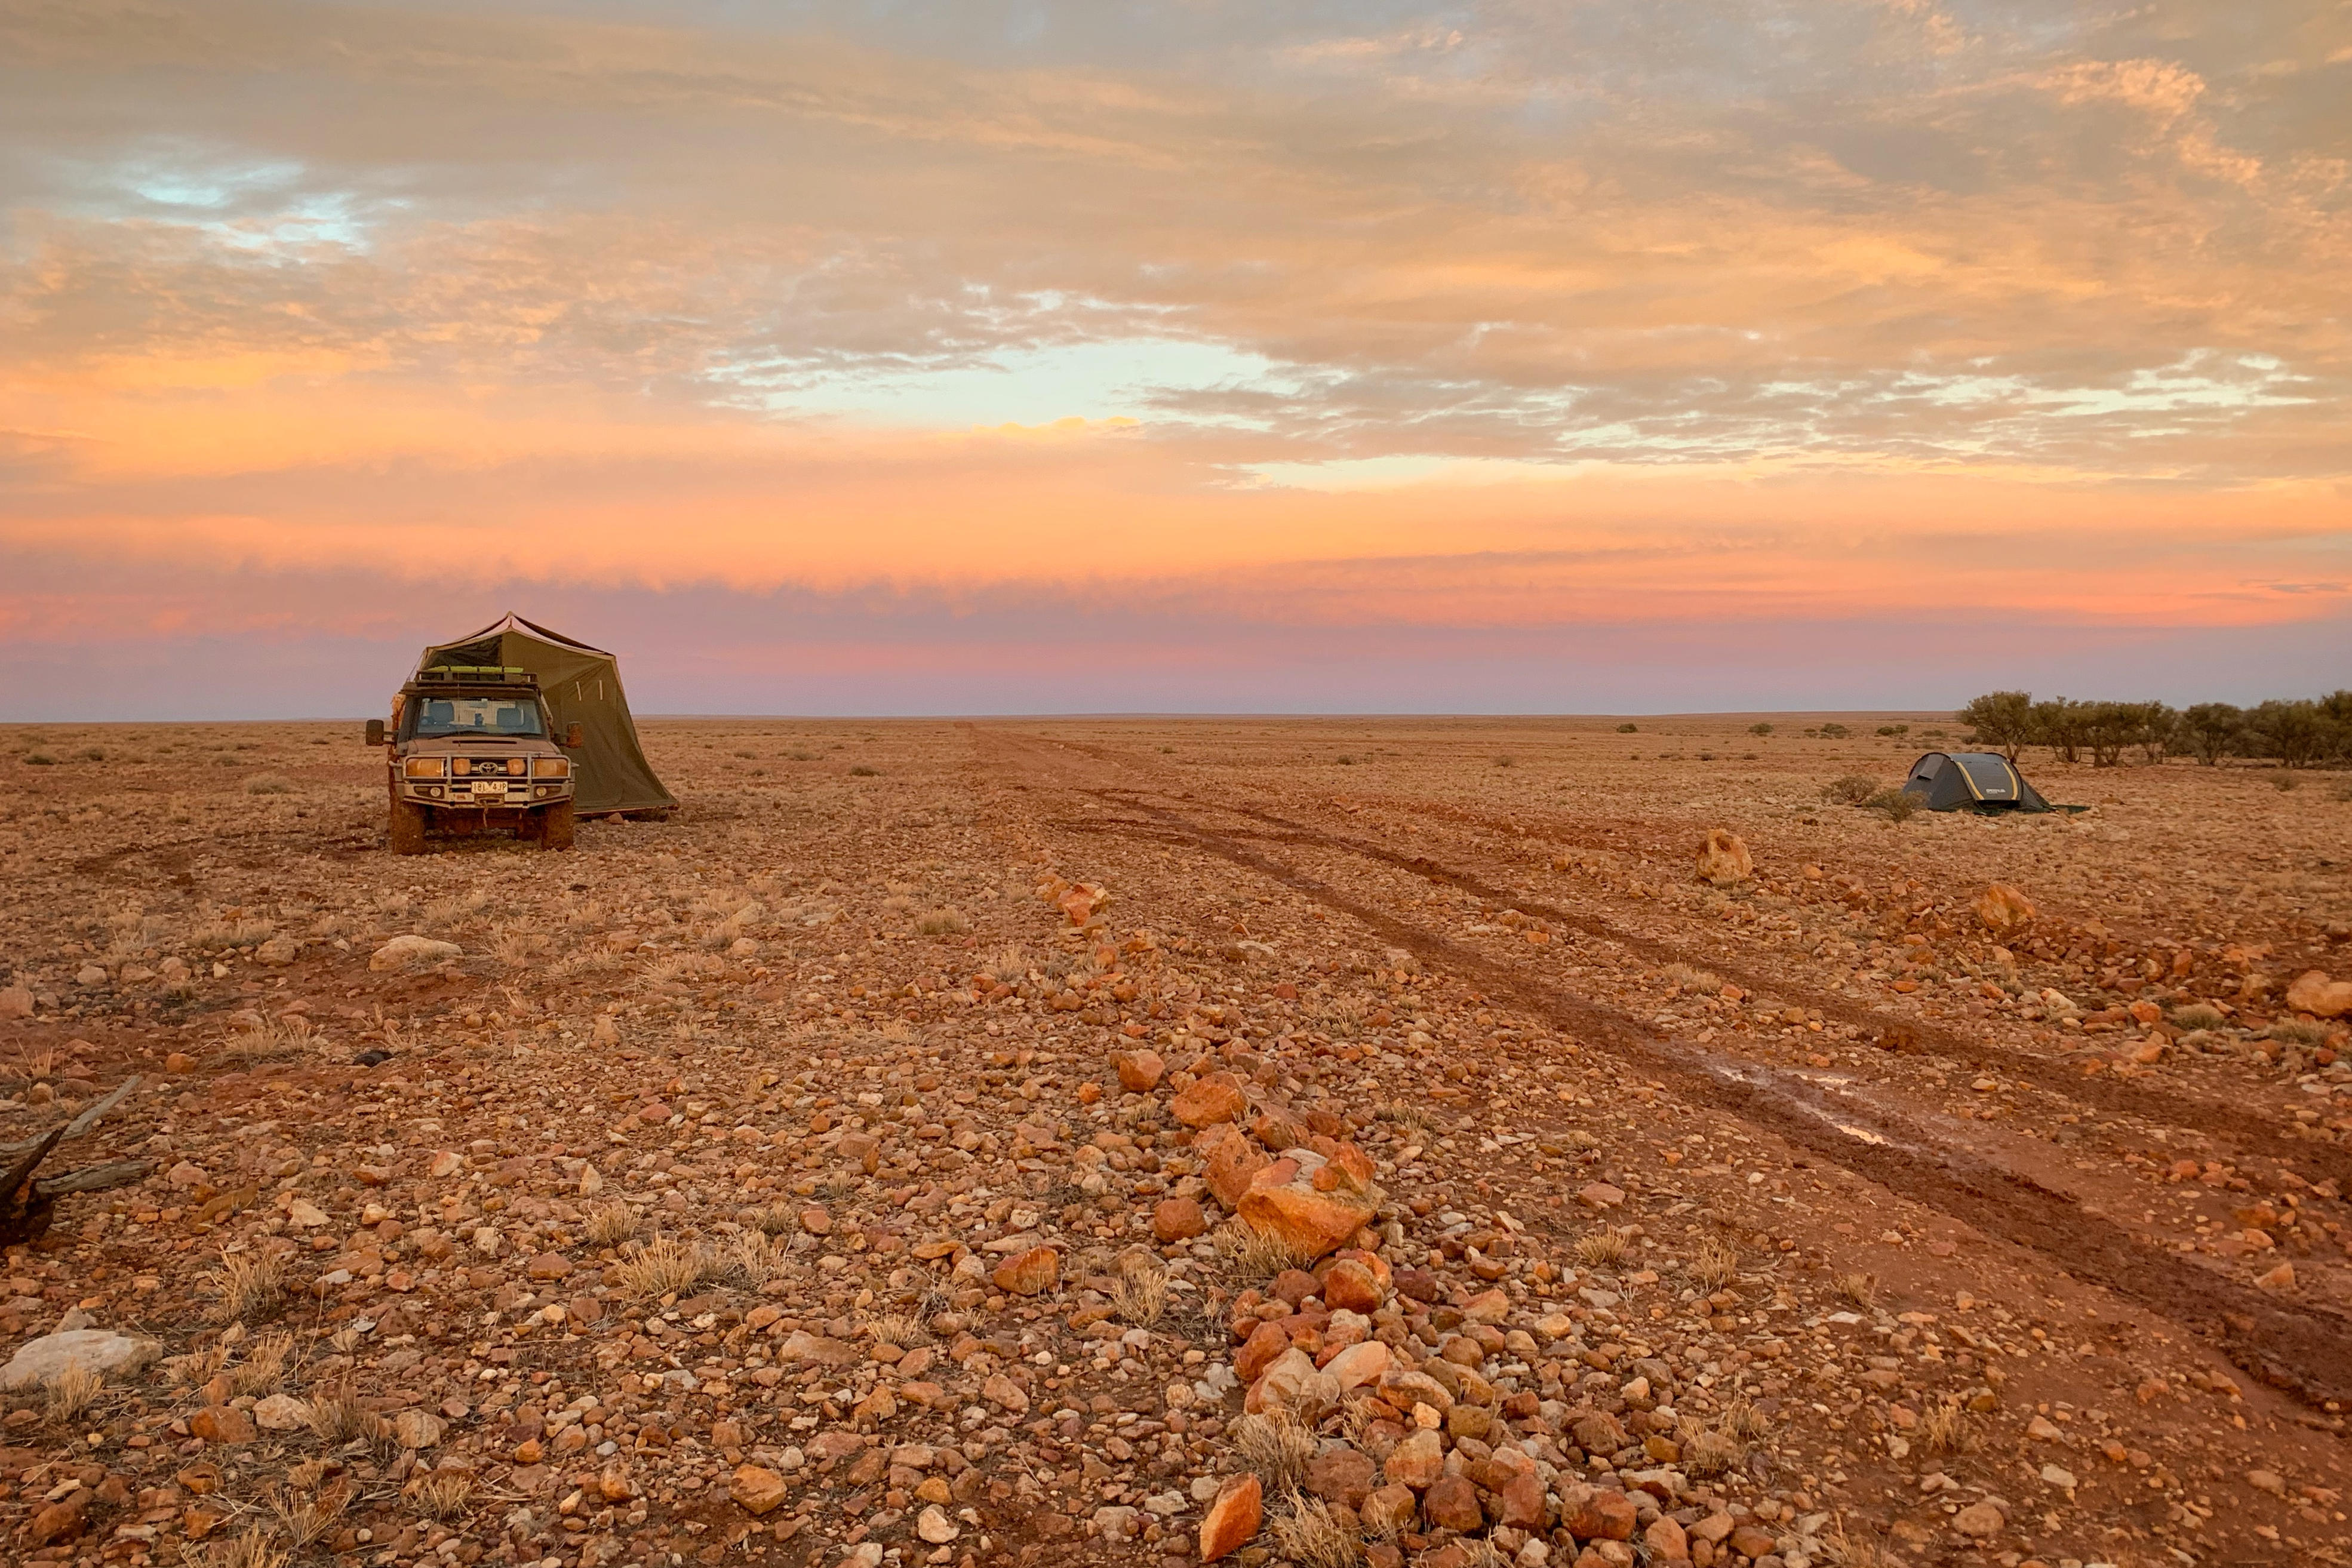 2019 Oodnadatta to Mt Dare Road Photo by Chris Atkins 2